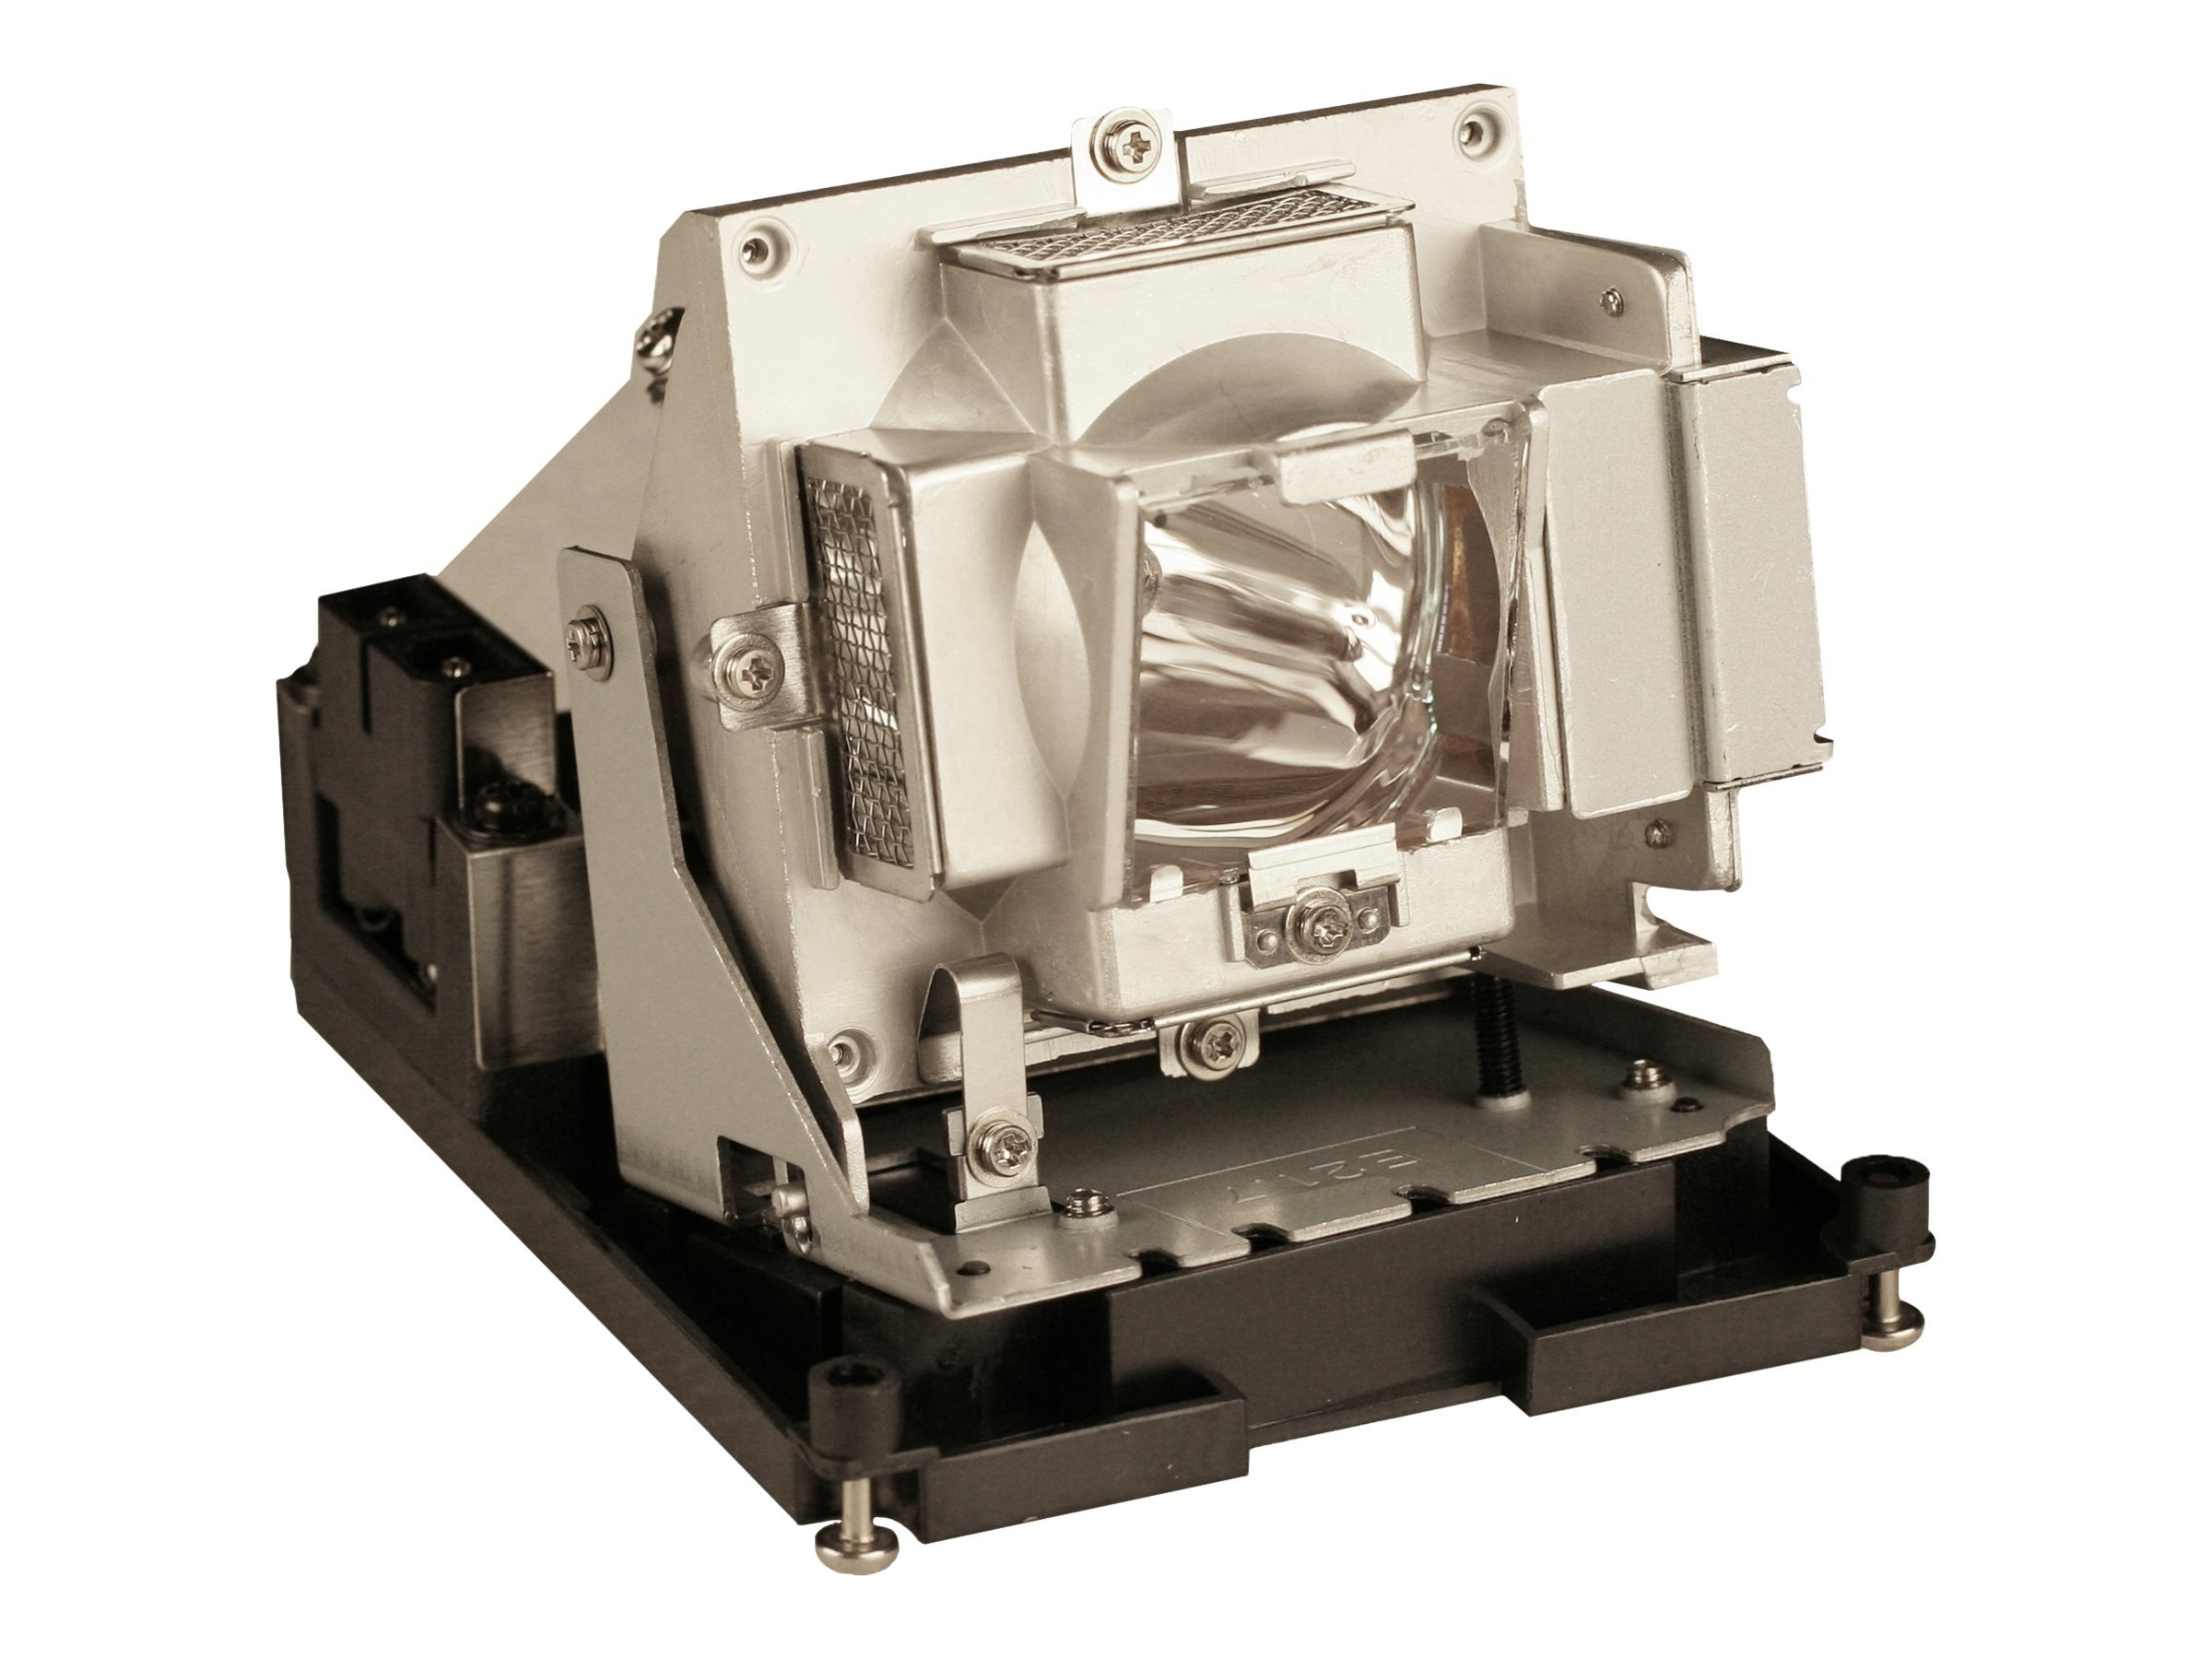 Optoma BL-FS300C, SHP, 300W Lamp Projector (TH1060P/TX779P-3D)